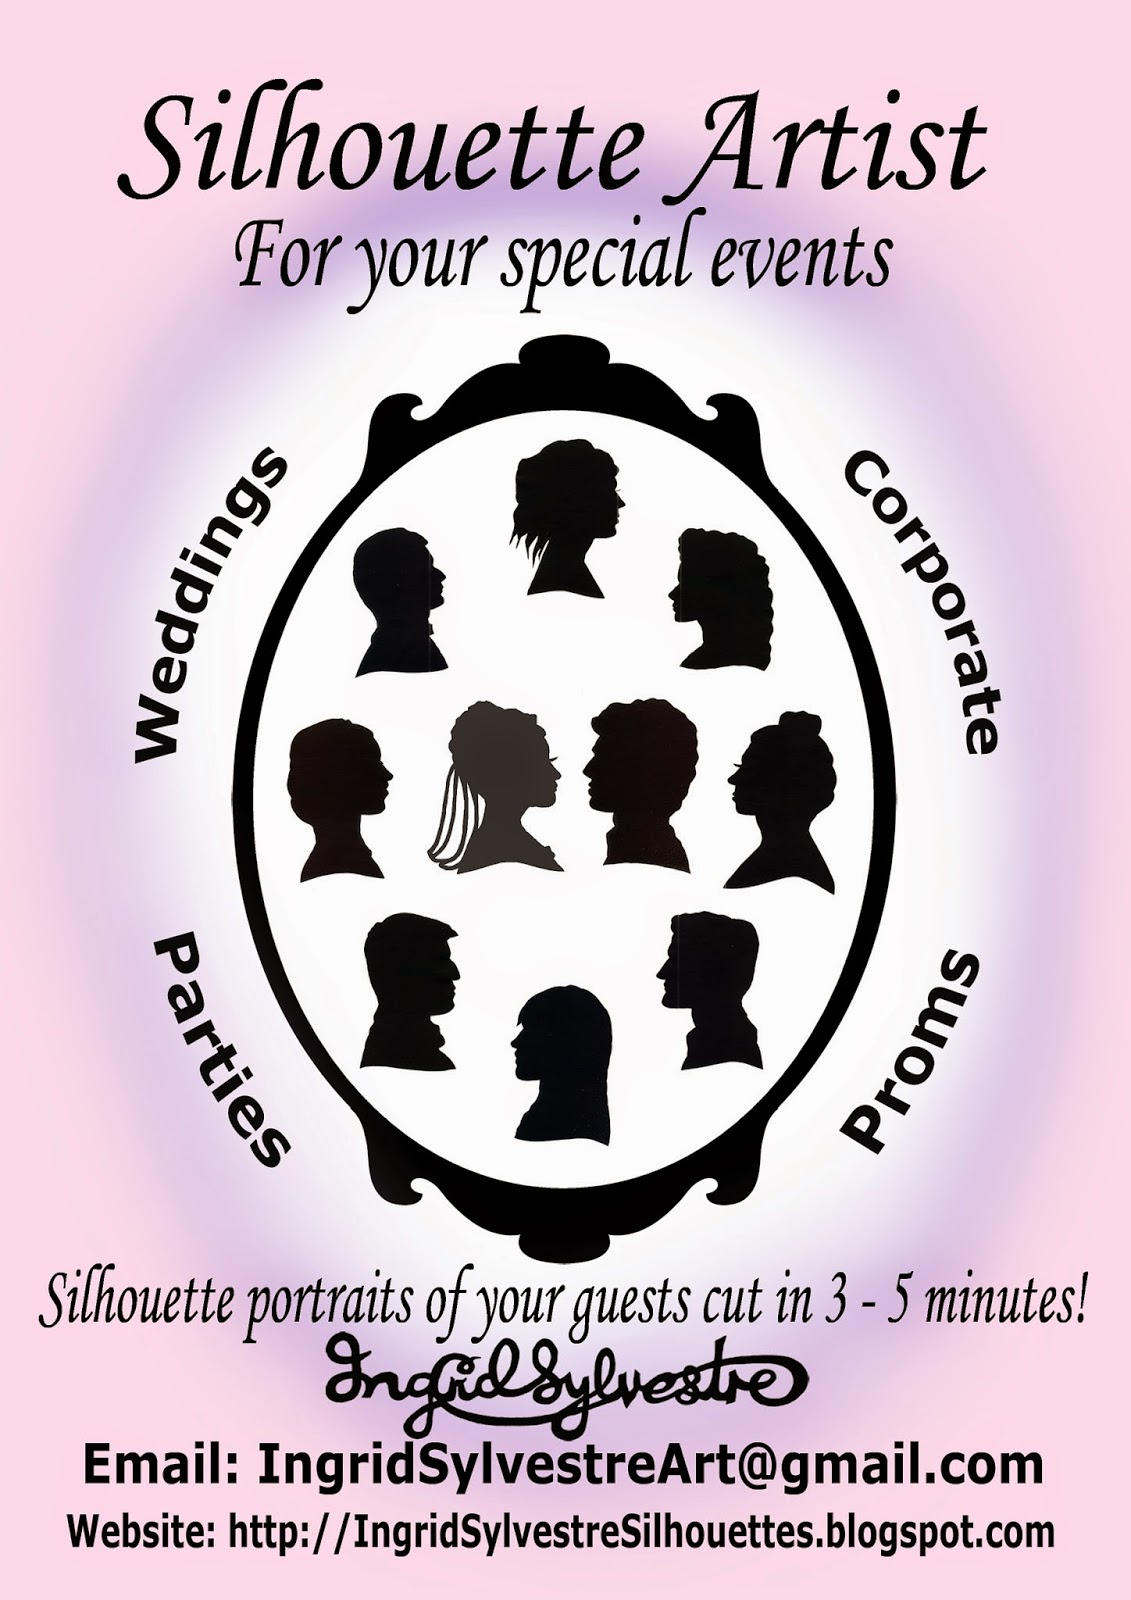 North East Wedding Entertainment ideas Party Entertainment Christmas Party Entertainment Corporate Events Wedding Caricatures and Silhouettes Ingrid Sylvestre UK caricaturist & silhouette artist North East Newcastle upon Tyne Durham Sunderland Middlesbrough Teesside Northumberland Yorkshire